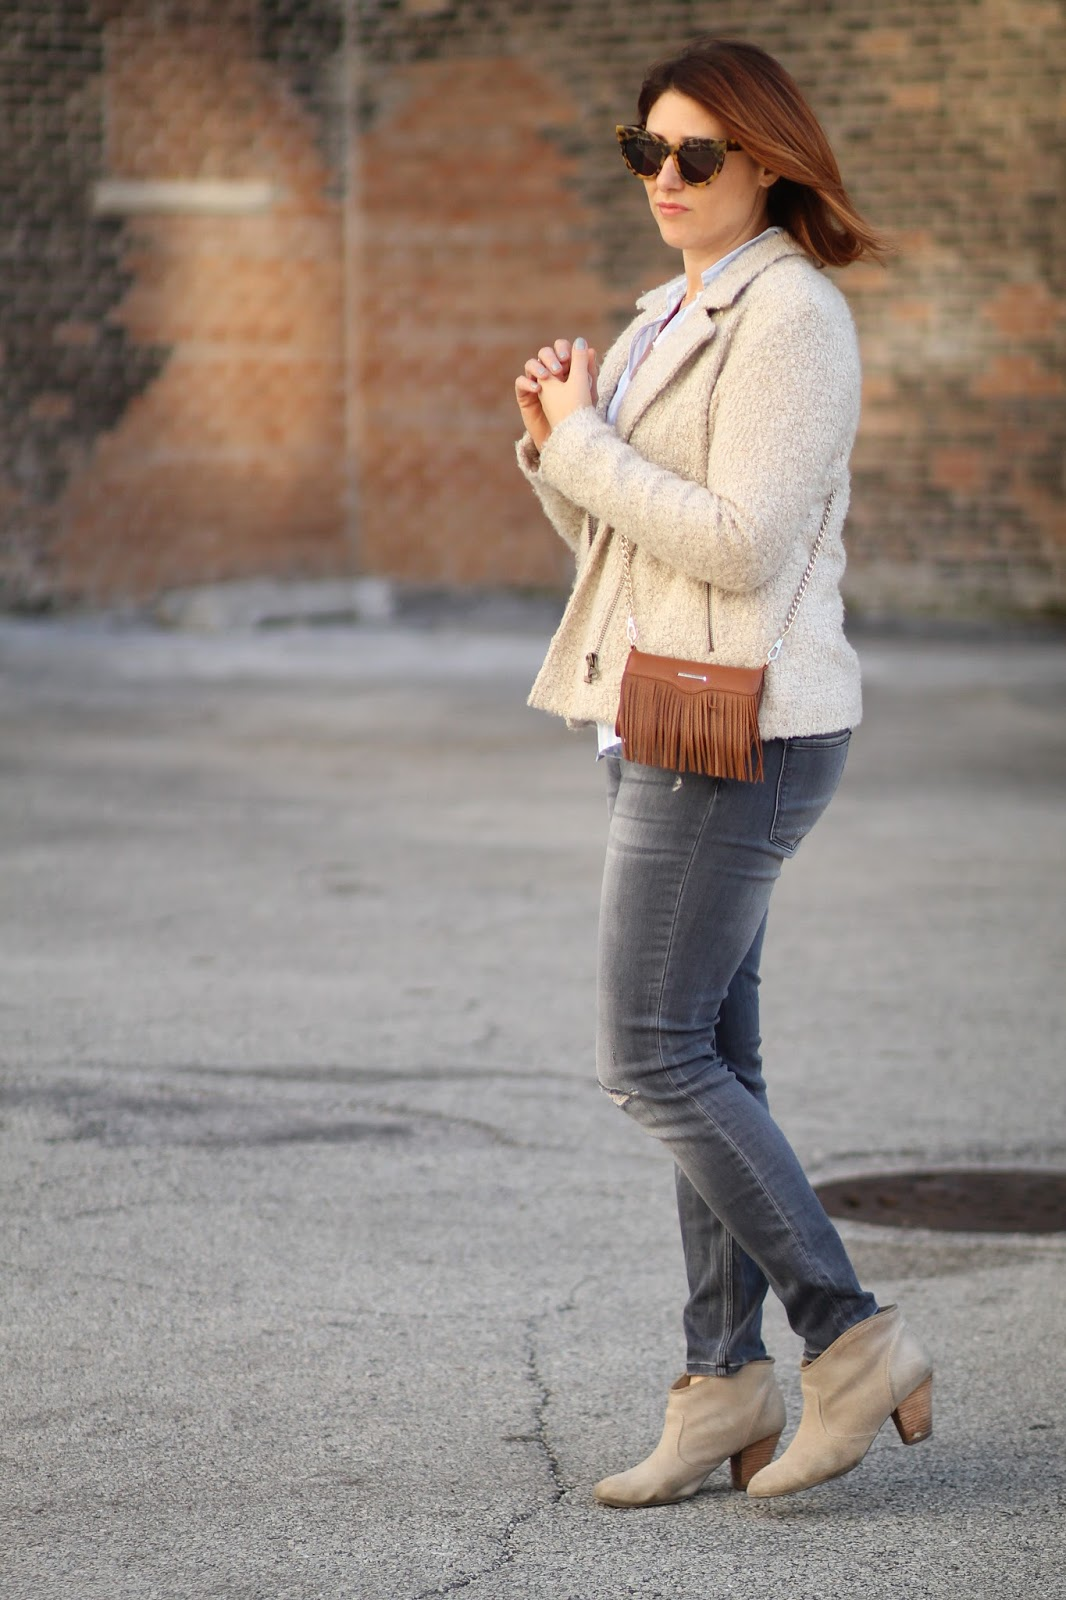 casual outfit idea, brunch look, weekend outfit, button down shirt, moto jacket, fringe bag purse, suede booties and distressed ripped gray jeans, Rebecca Minkoff fringe phone case, karen walker sunglasses, sunburst